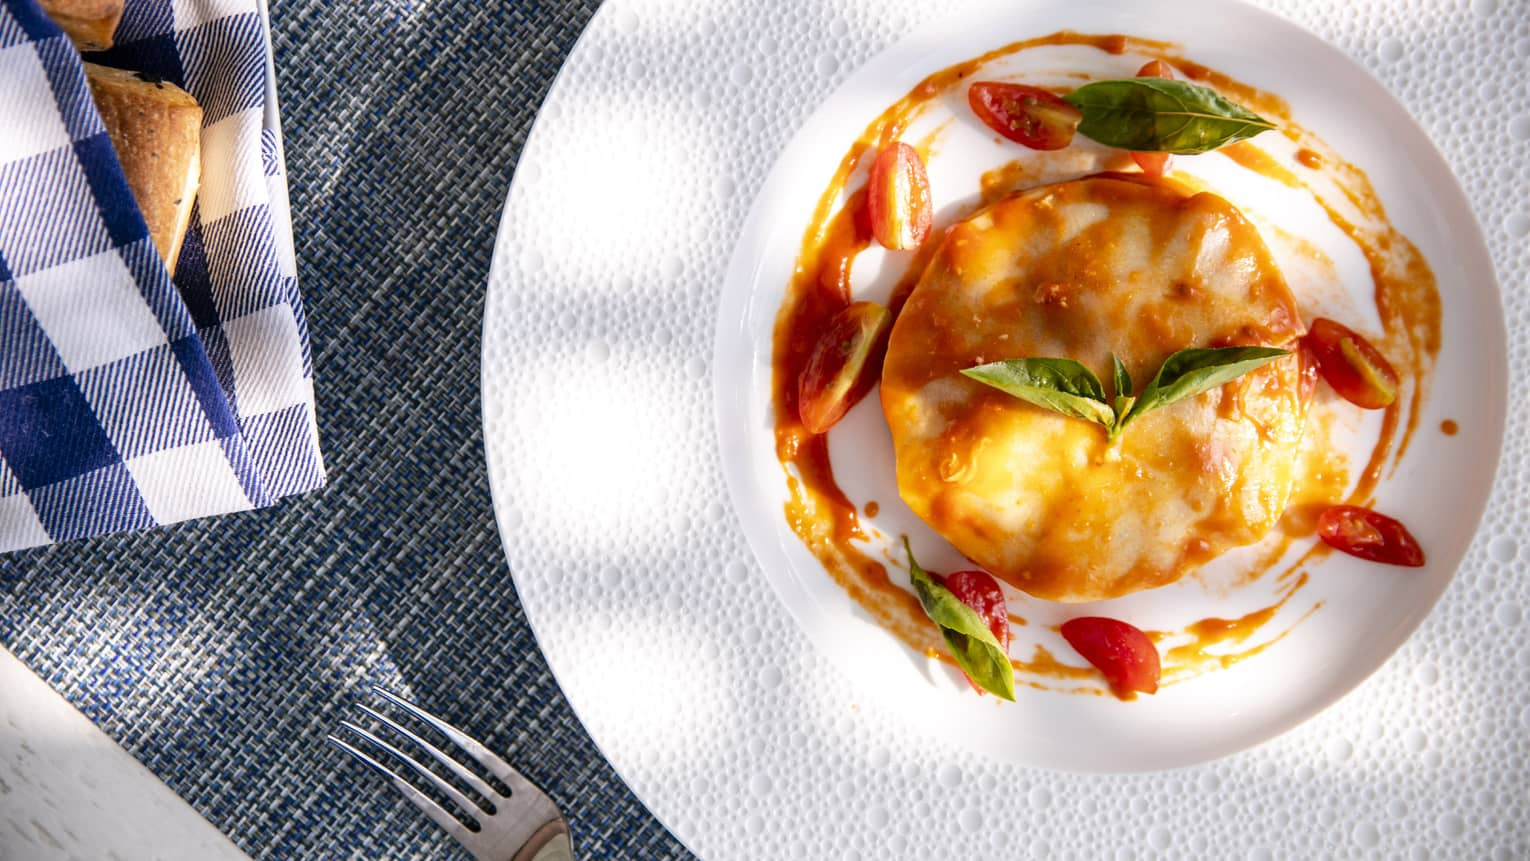 an aerial shot of a tomato and egg dish with basil on top in Four Seasons Maldives - Landaa